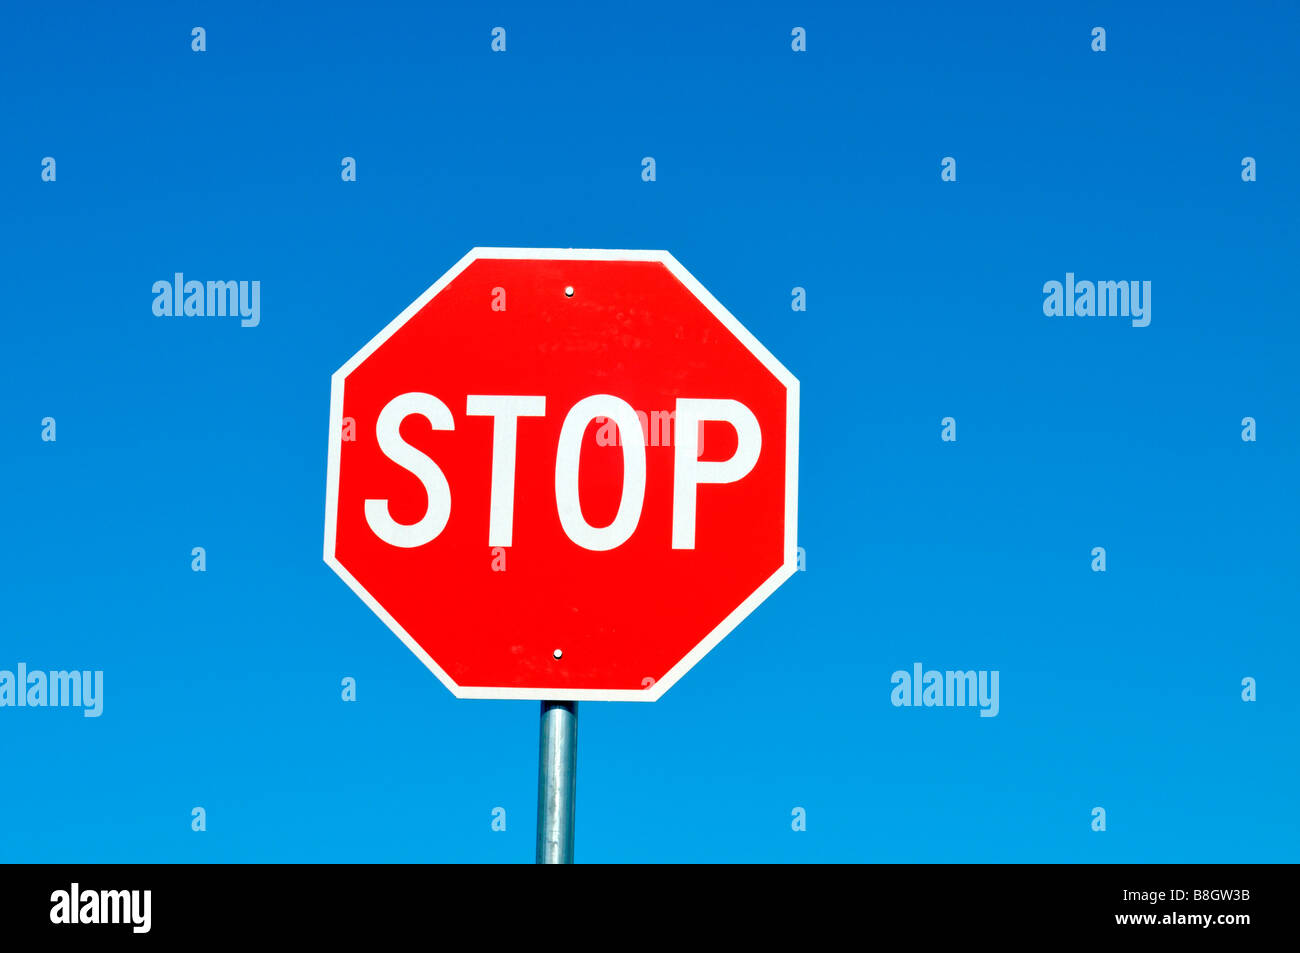 Red and white stop sign against solid clear blue sky - Stock Image